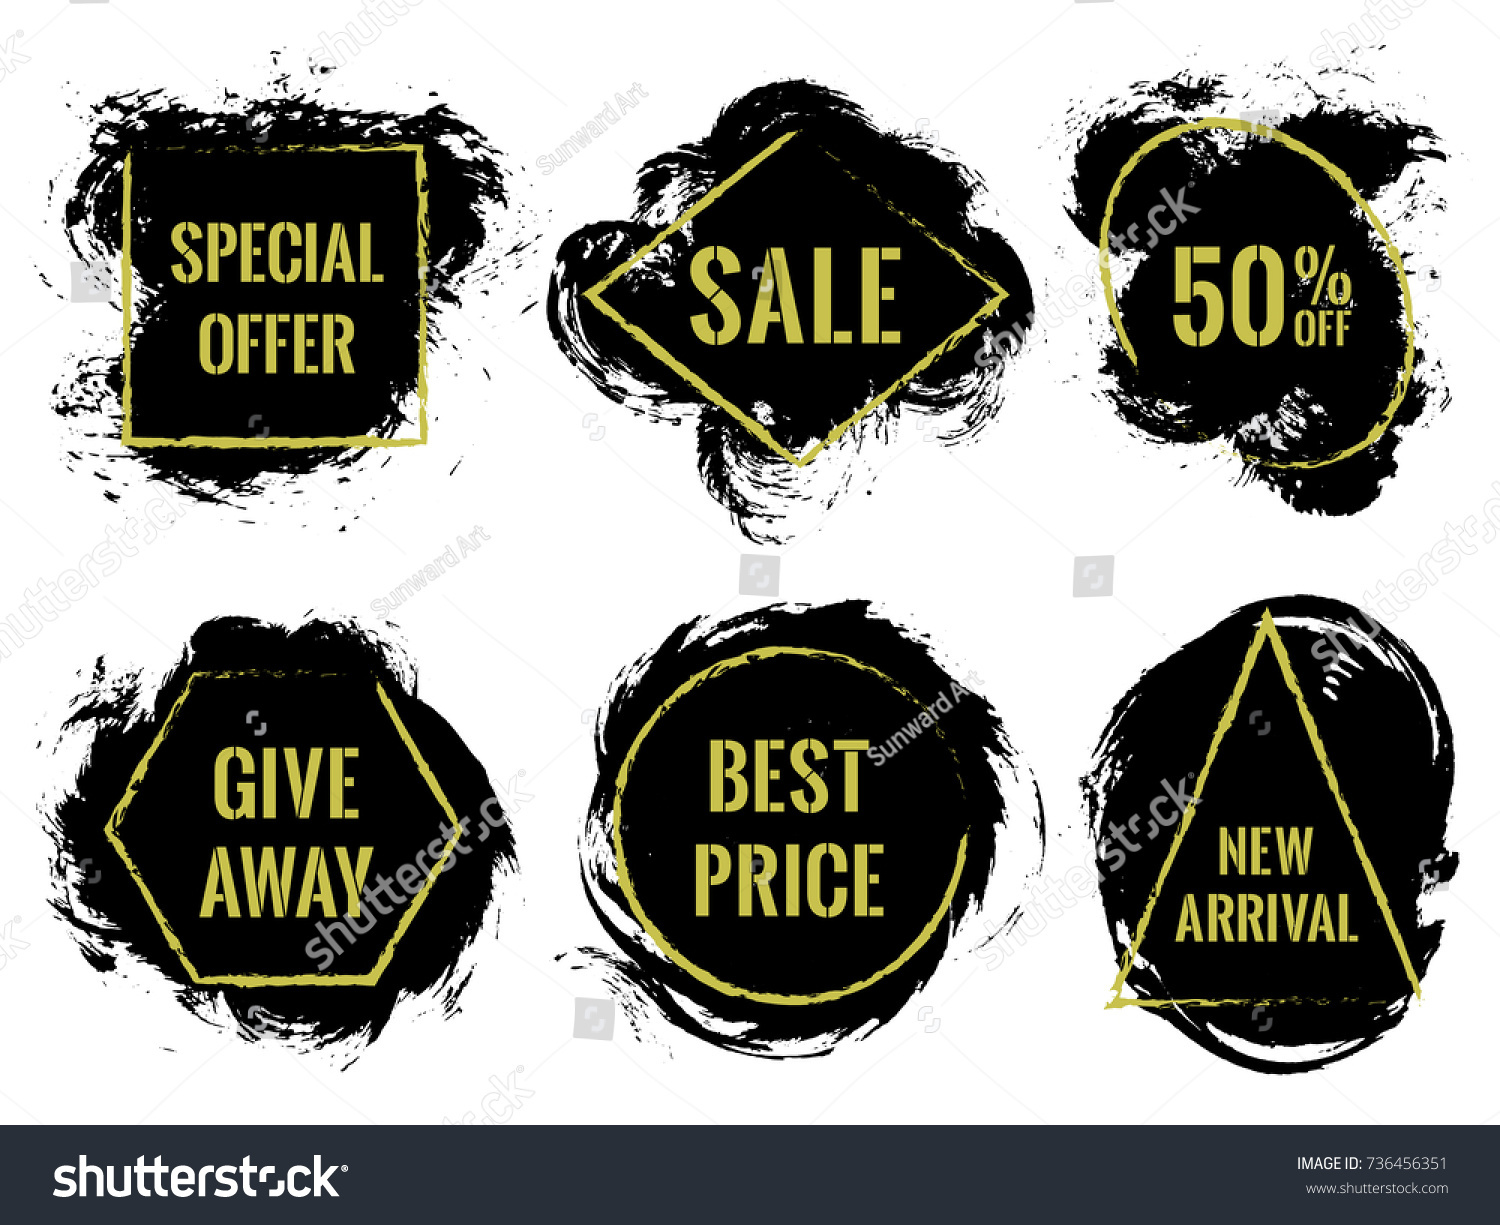 Marketing banners sale vector collection advertising stock vector marketing banners for sale vector collection advertising banners with geometric shape borders frames sciox Choice Image